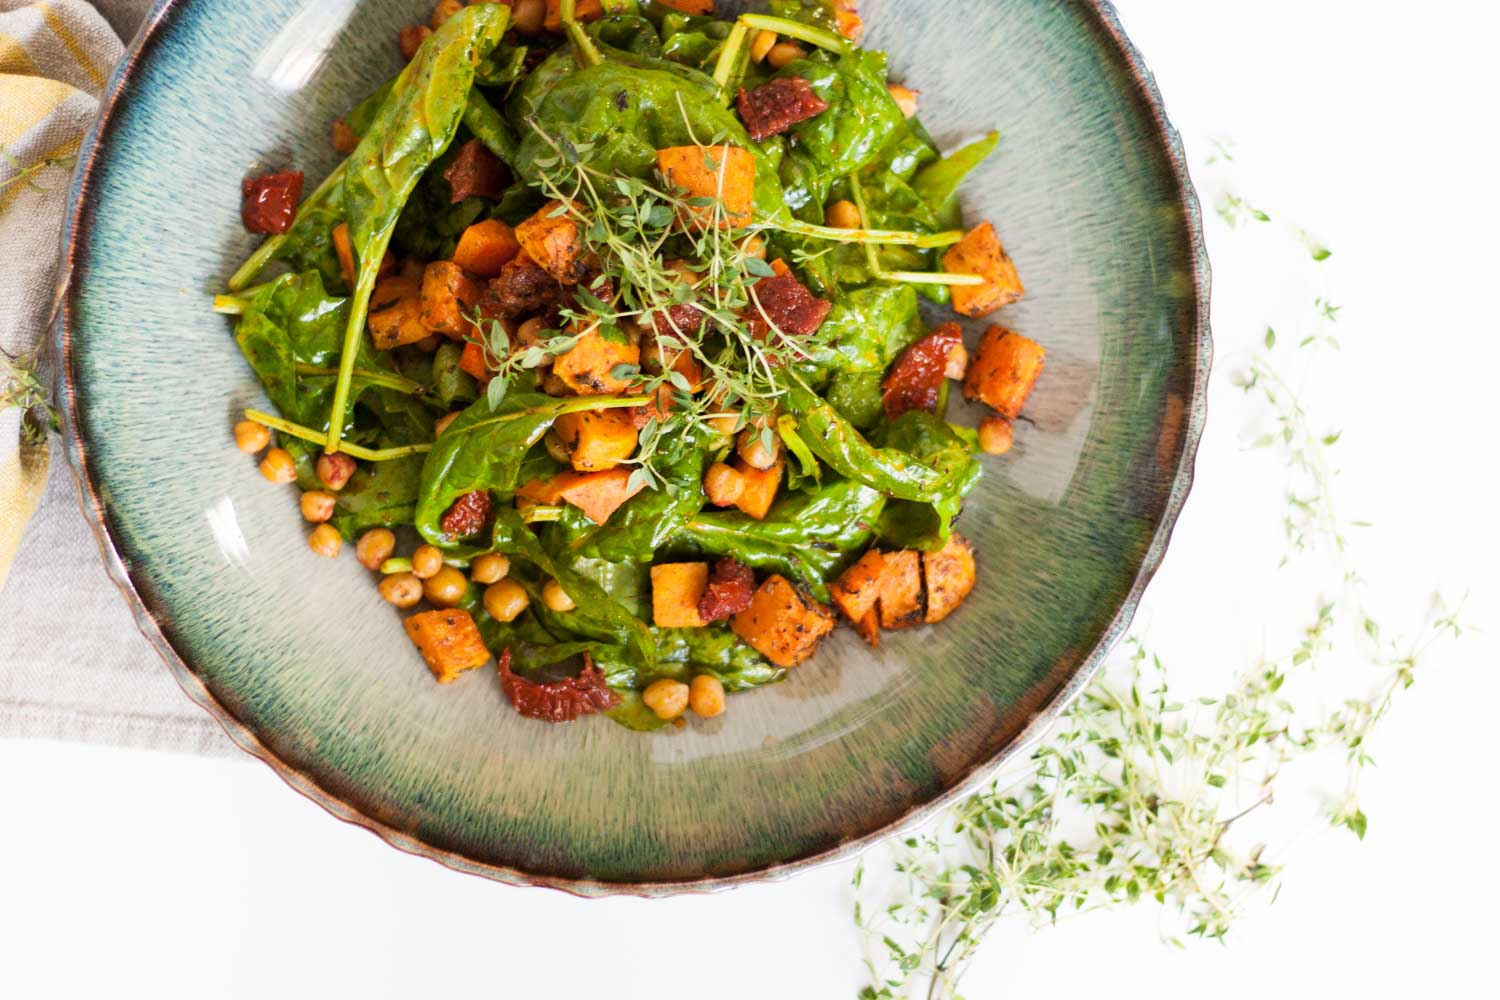 Sweet-Potato-Chickpea-Süßkartoffeln-Kichererbsen-Salat-Clean-Eating-Summersalad-Sommersalat-Spinat-Foodbogger-Austria-Giveherglitter-5